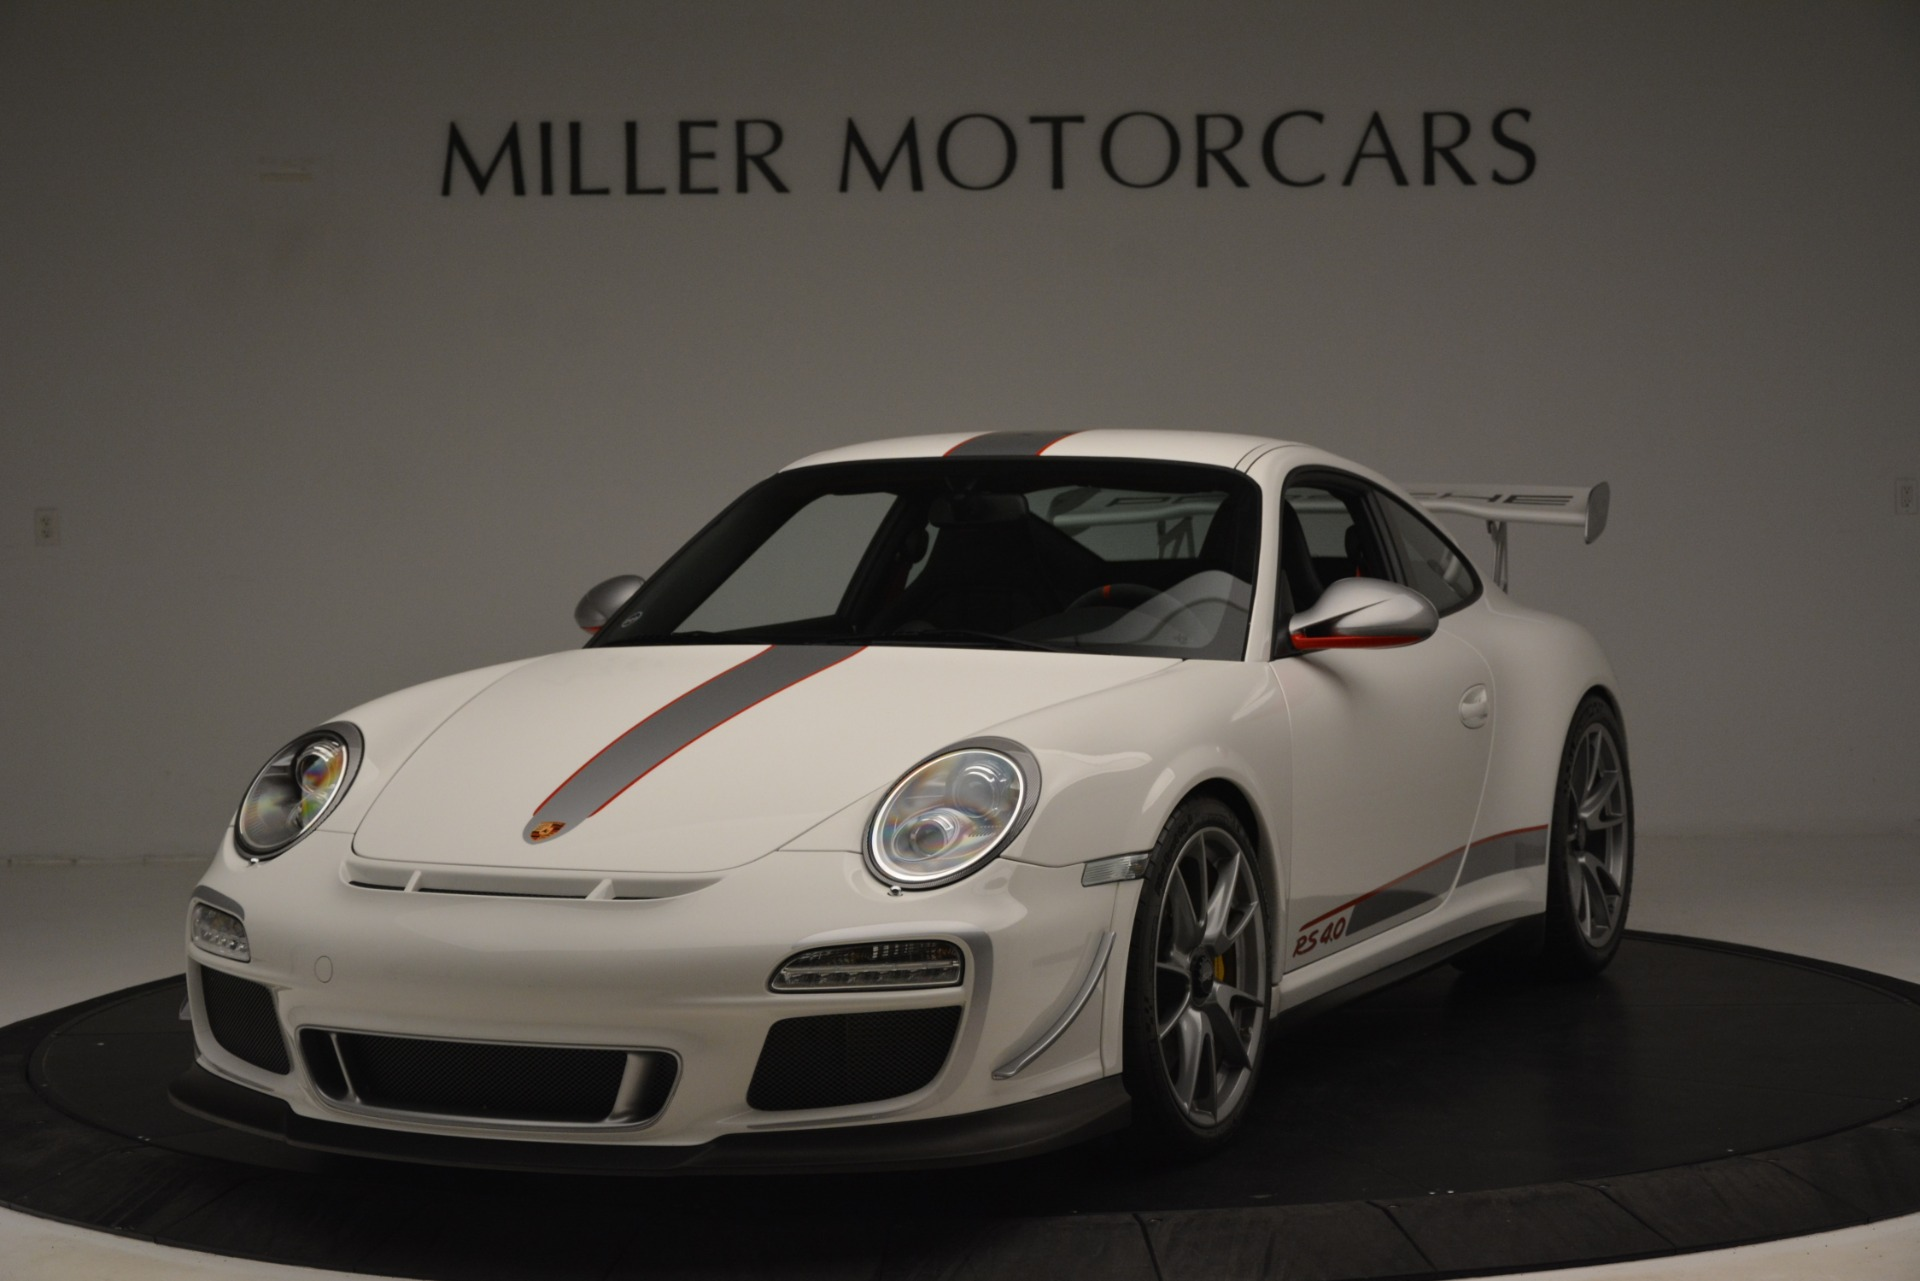 Used 2011 Porsche 911 GT3 RS 4.0 for sale Sold at Bentley Greenwich in Greenwich CT 06830 1